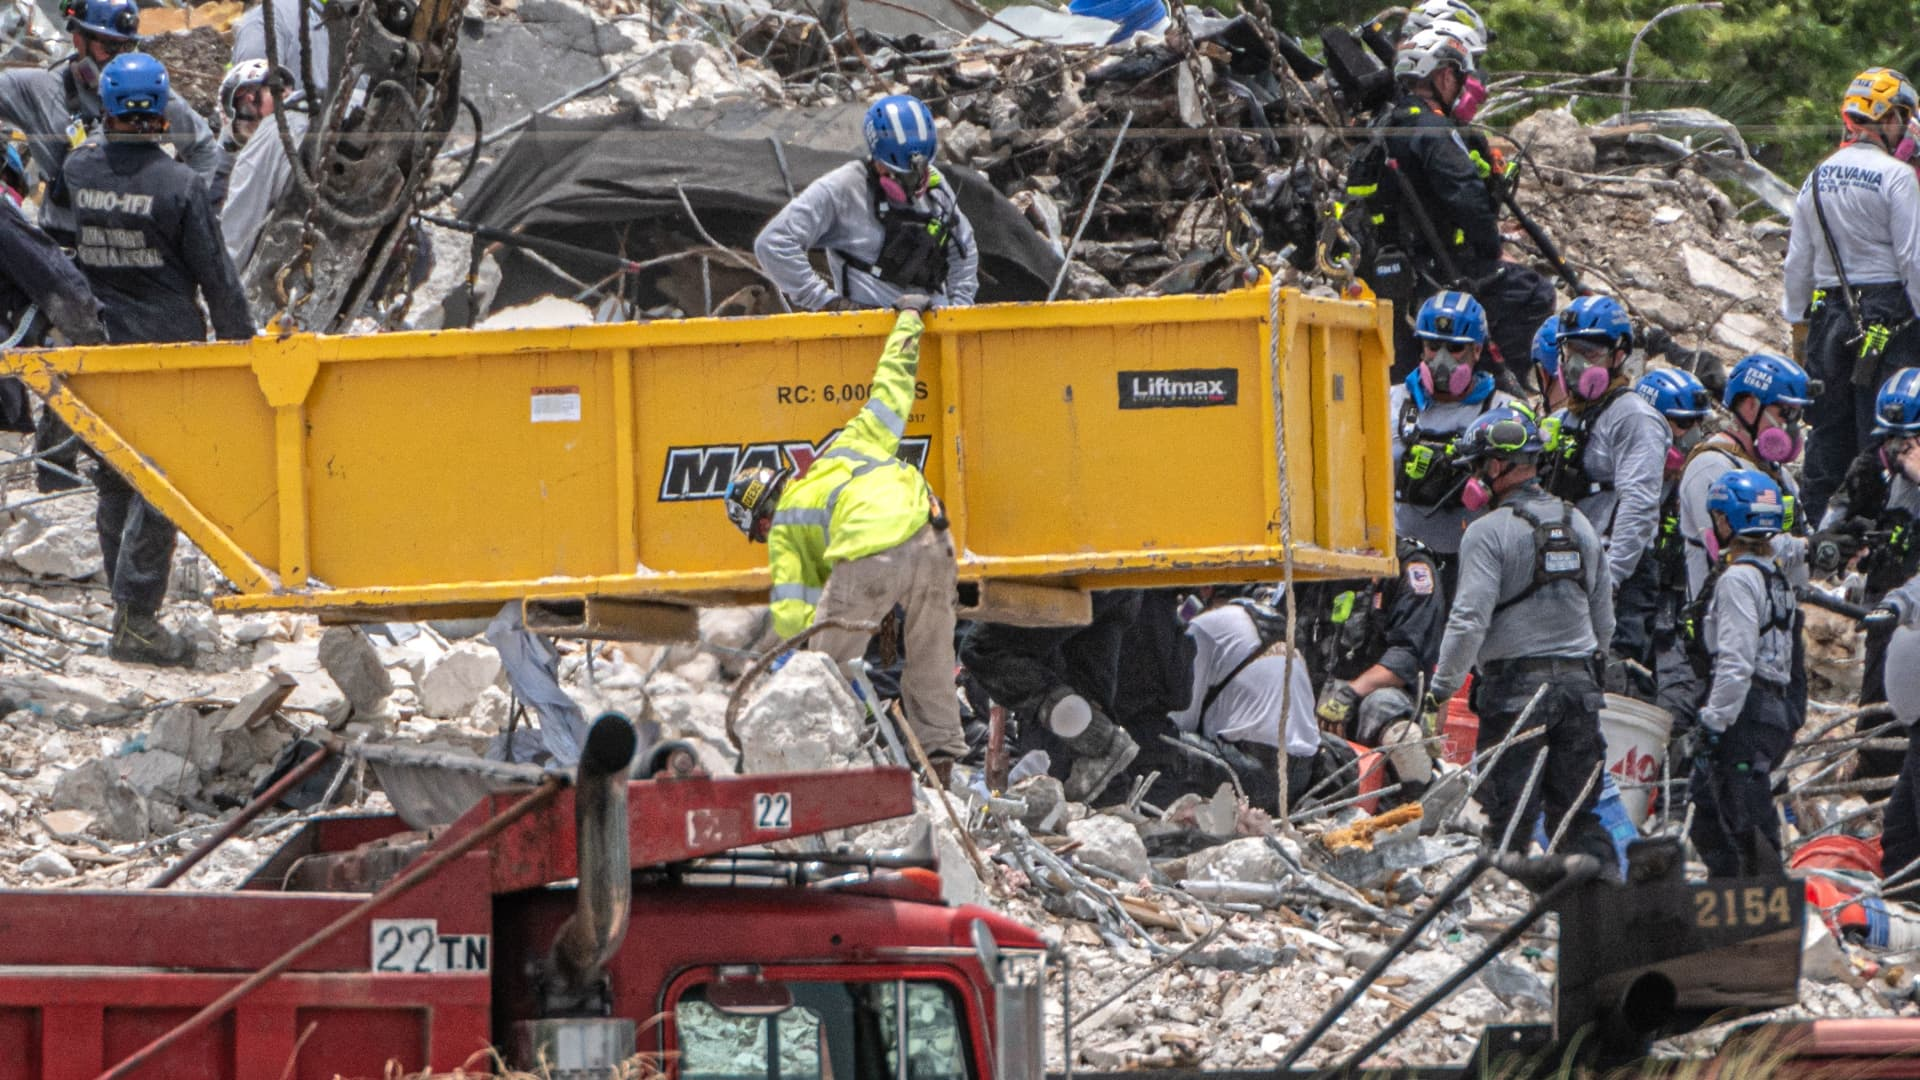 After a brief stop to demolish the standing debris, Search and Rescue personnel continue working in the rubble pile of the partially collapsed 12-story Champlain Towers South condo on July 5, 2021 in Surfside, Florida.